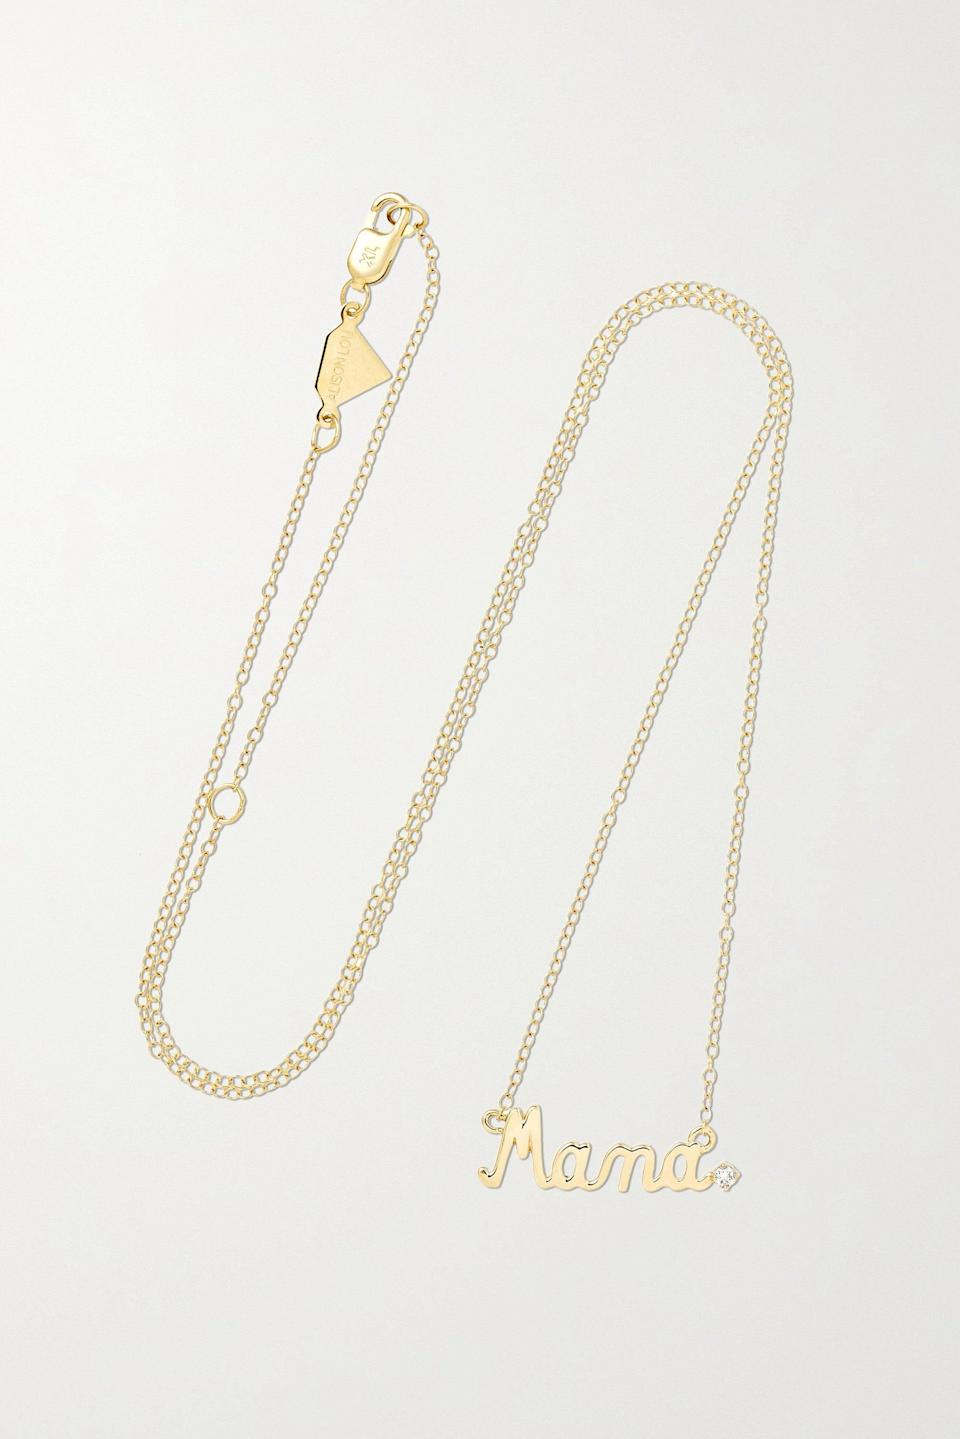 "<h2>Alison Lou ""Mama"" 14K Gold and Diamond Necklace</h2><br><br><strong>Alison Lou</strong> ""Mama"" 14-karat gold diamond necklace, $, available at <a href=""https://go.skimresources.com/?id=30283X879131&url=https%3A%2F%2Fwww.net-a-porter.com%2Fen-us%2Fshop%2Fproduct%2Falison-lou%2Fmama-14-karat-gold-diamond-necklace%2F1119067"" rel=""nofollow noopener"" target=""_blank"" data-ylk=""slk:Net-A-Porter"" class=""link rapid-noclick-resp"">Net-A-Porter</a>"